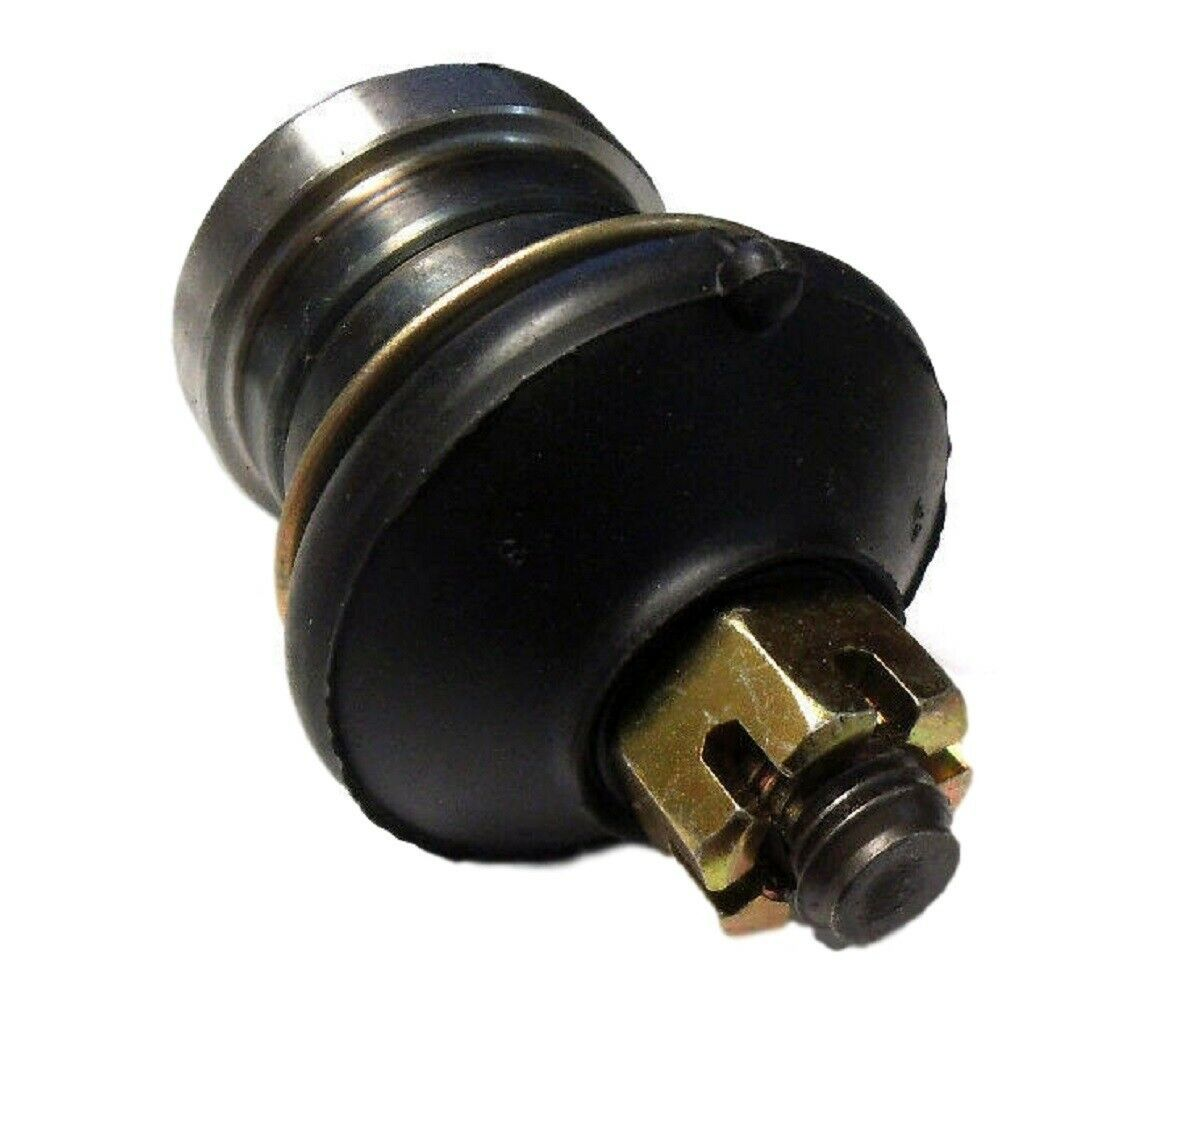 Norris Ford Home: McQay-Norris FA1272 Front Lower Suspension Ball Joint Fits